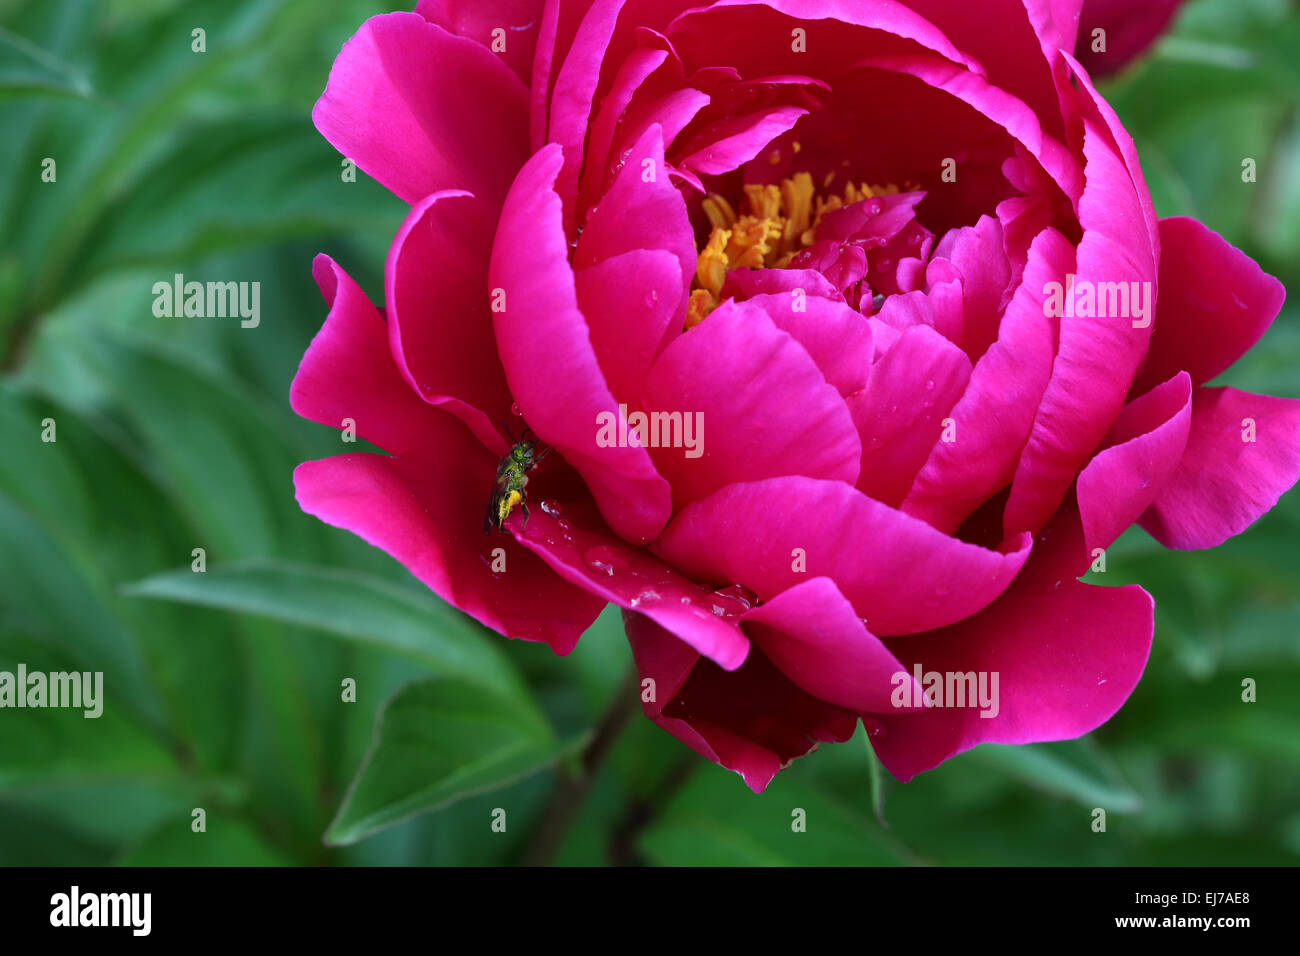 Bright pink peony flower with small green bug on a petal stock photo bright pink peony flower with small green bug on a petal mightylinksfo